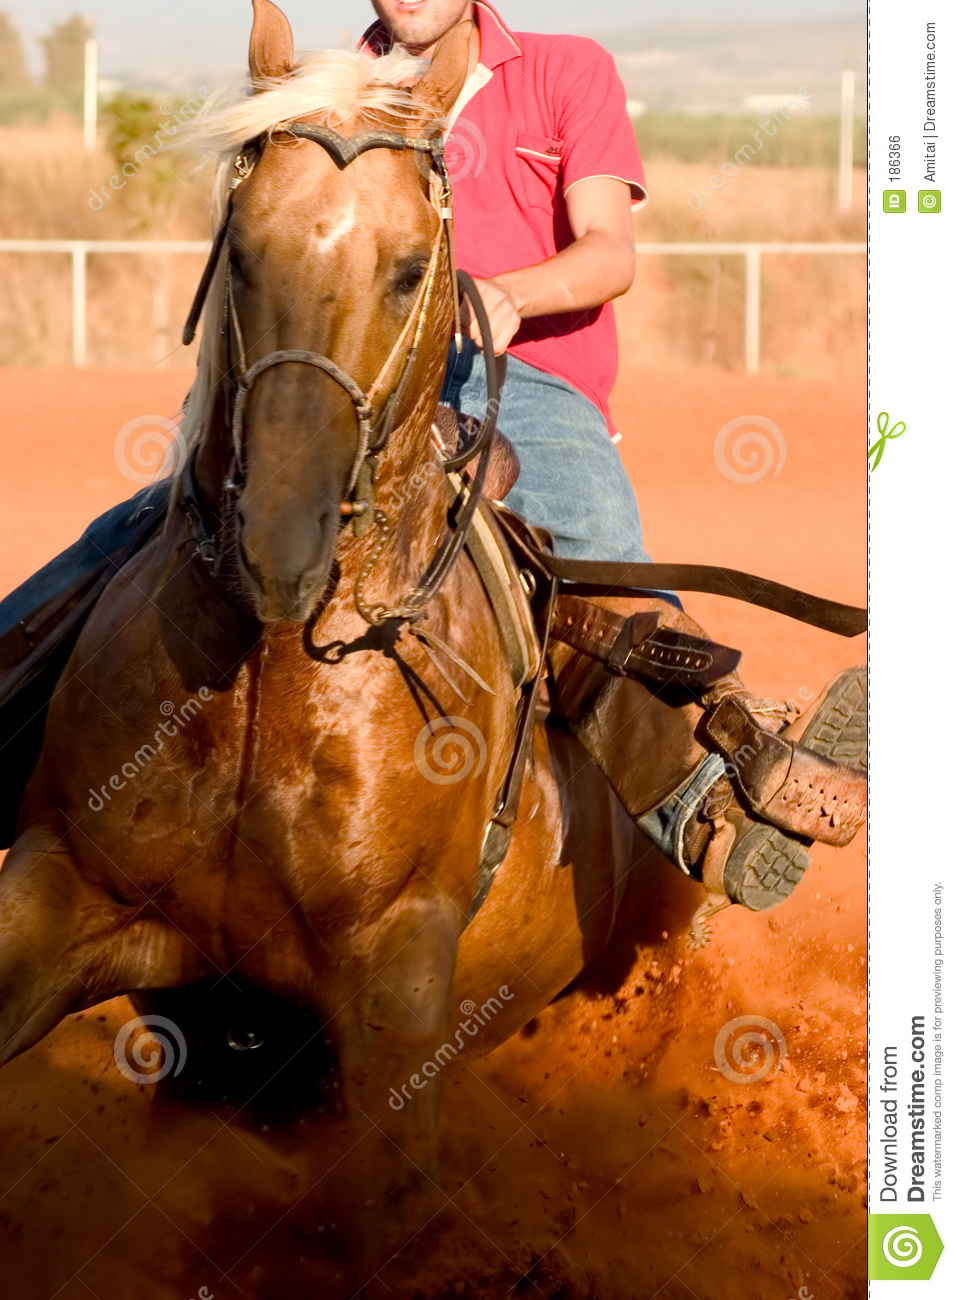 Western Horse Riding Clipart Western Style Horse Ri...